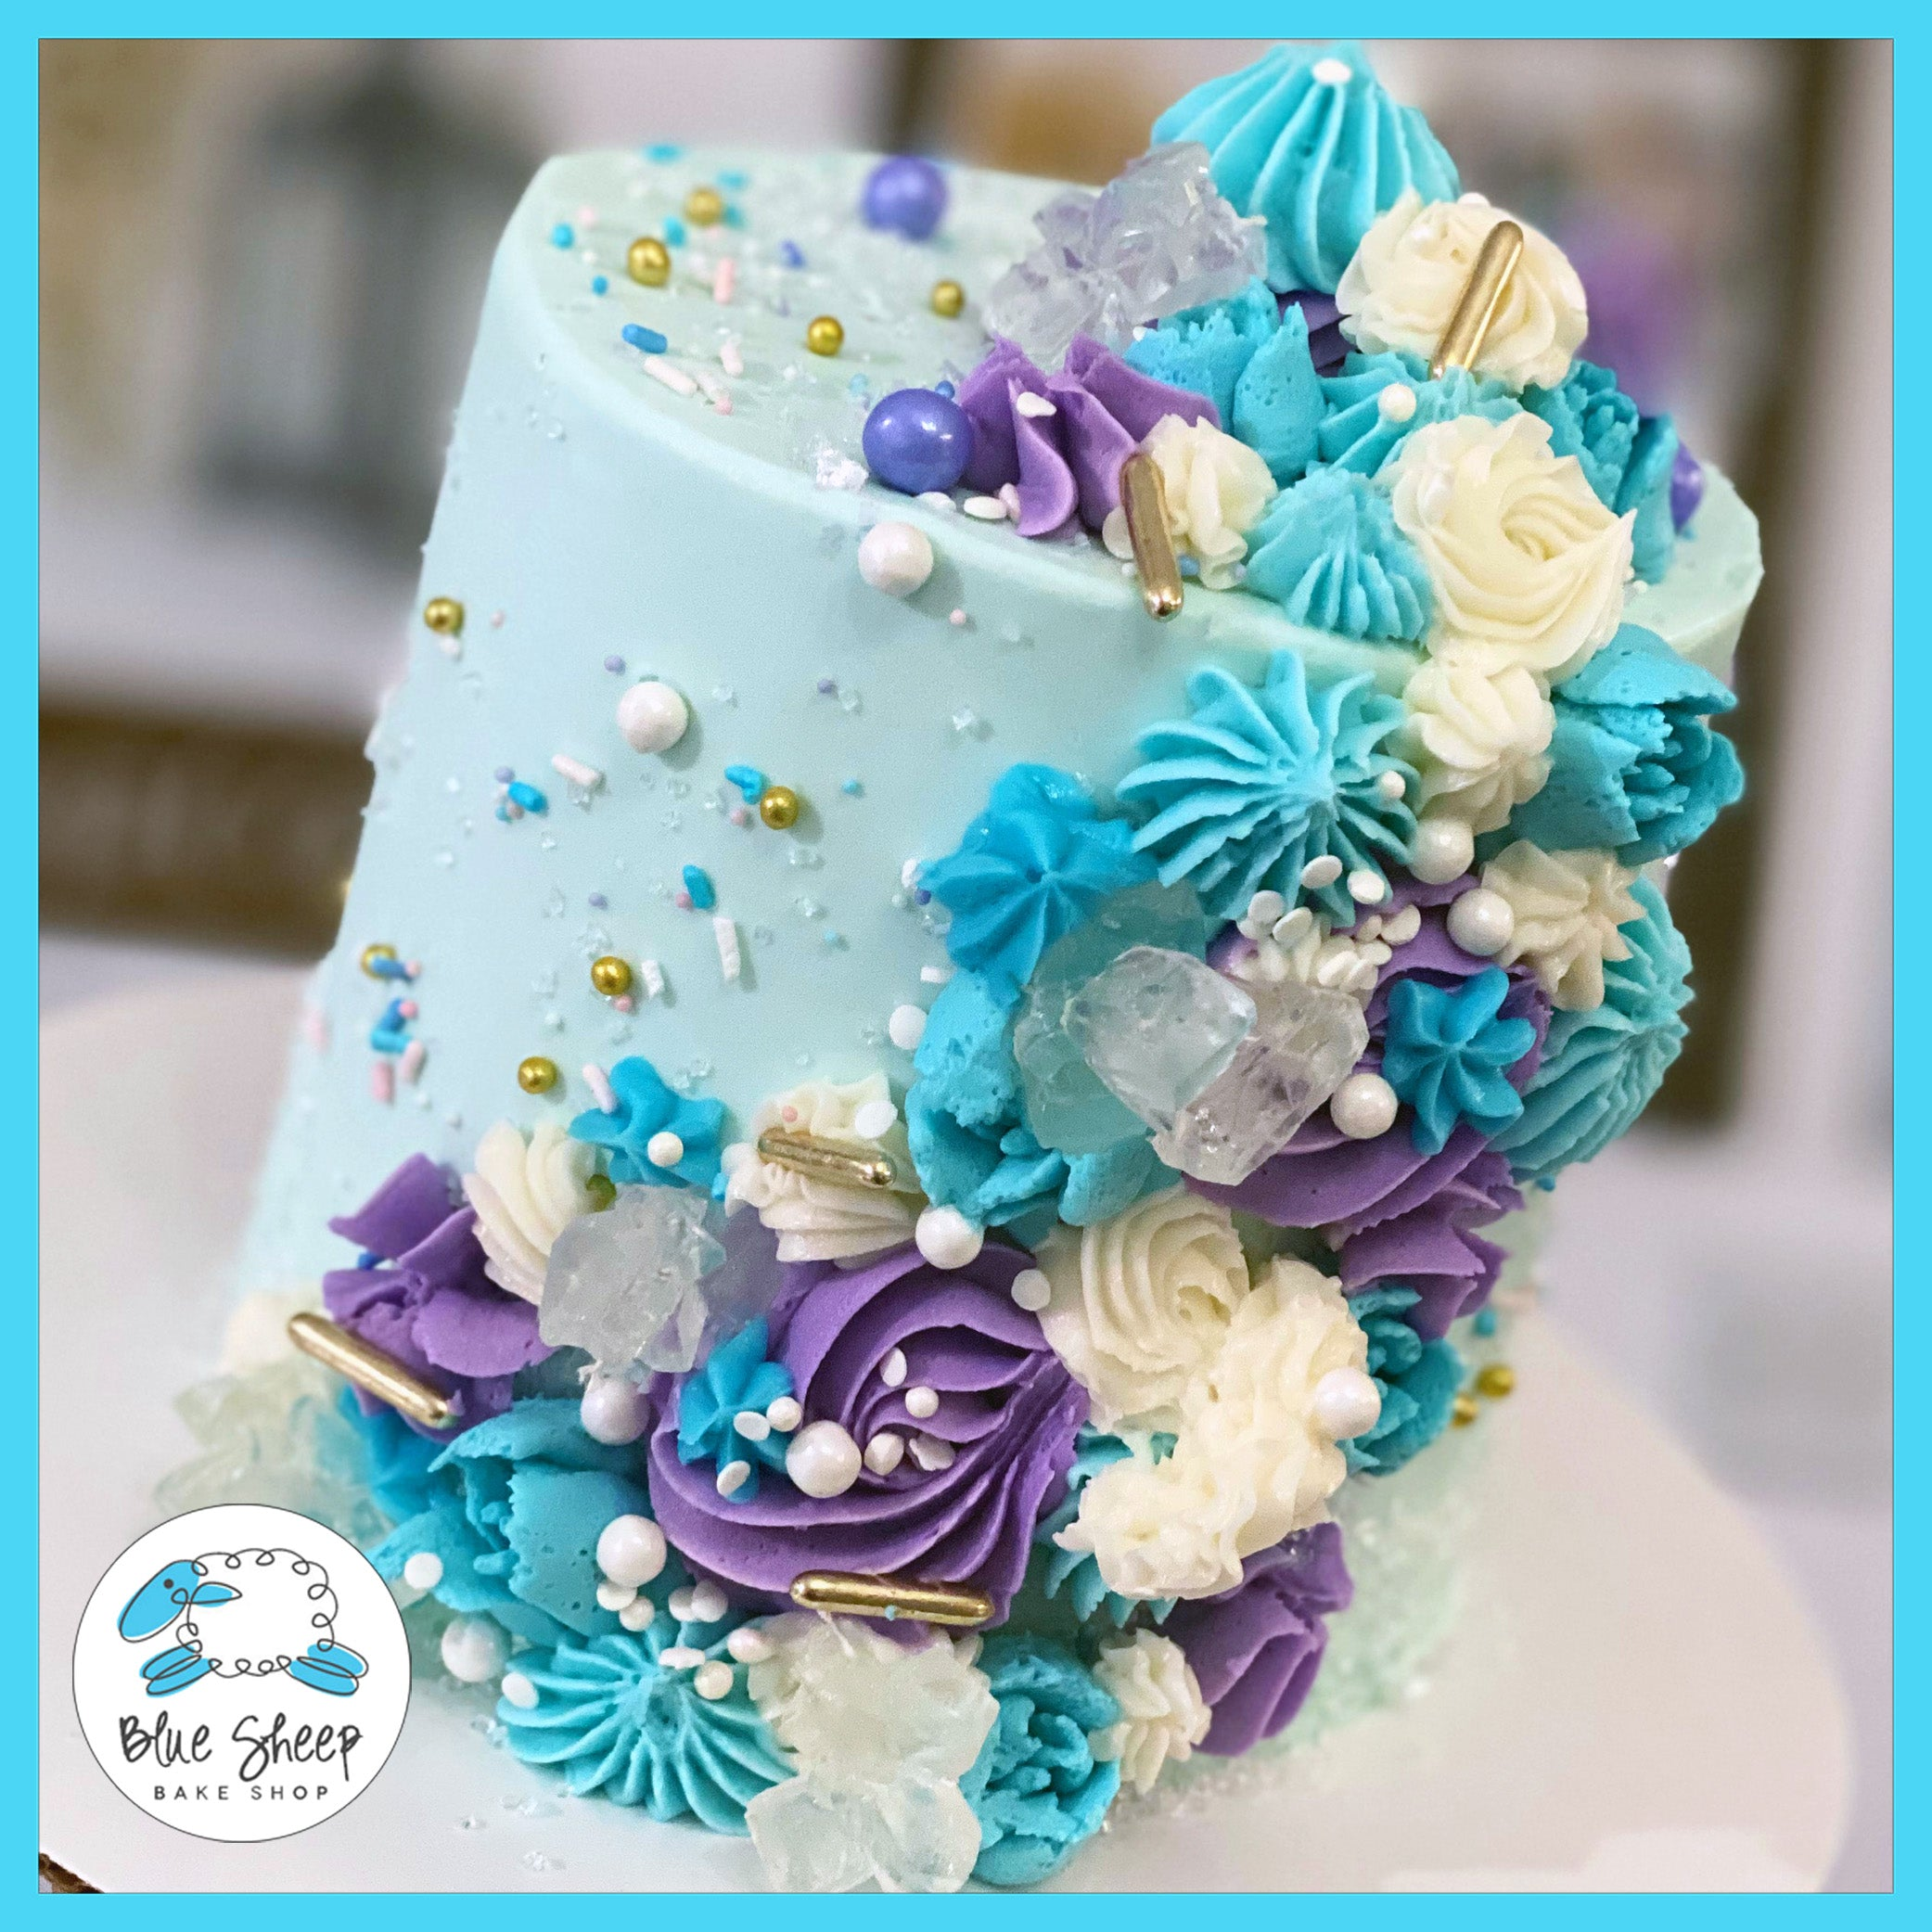 Tremendous Blue And Lavender Side Sweep Textures Cake Blue Sheep Bake Shop Funny Birthday Cards Online Elaedamsfinfo